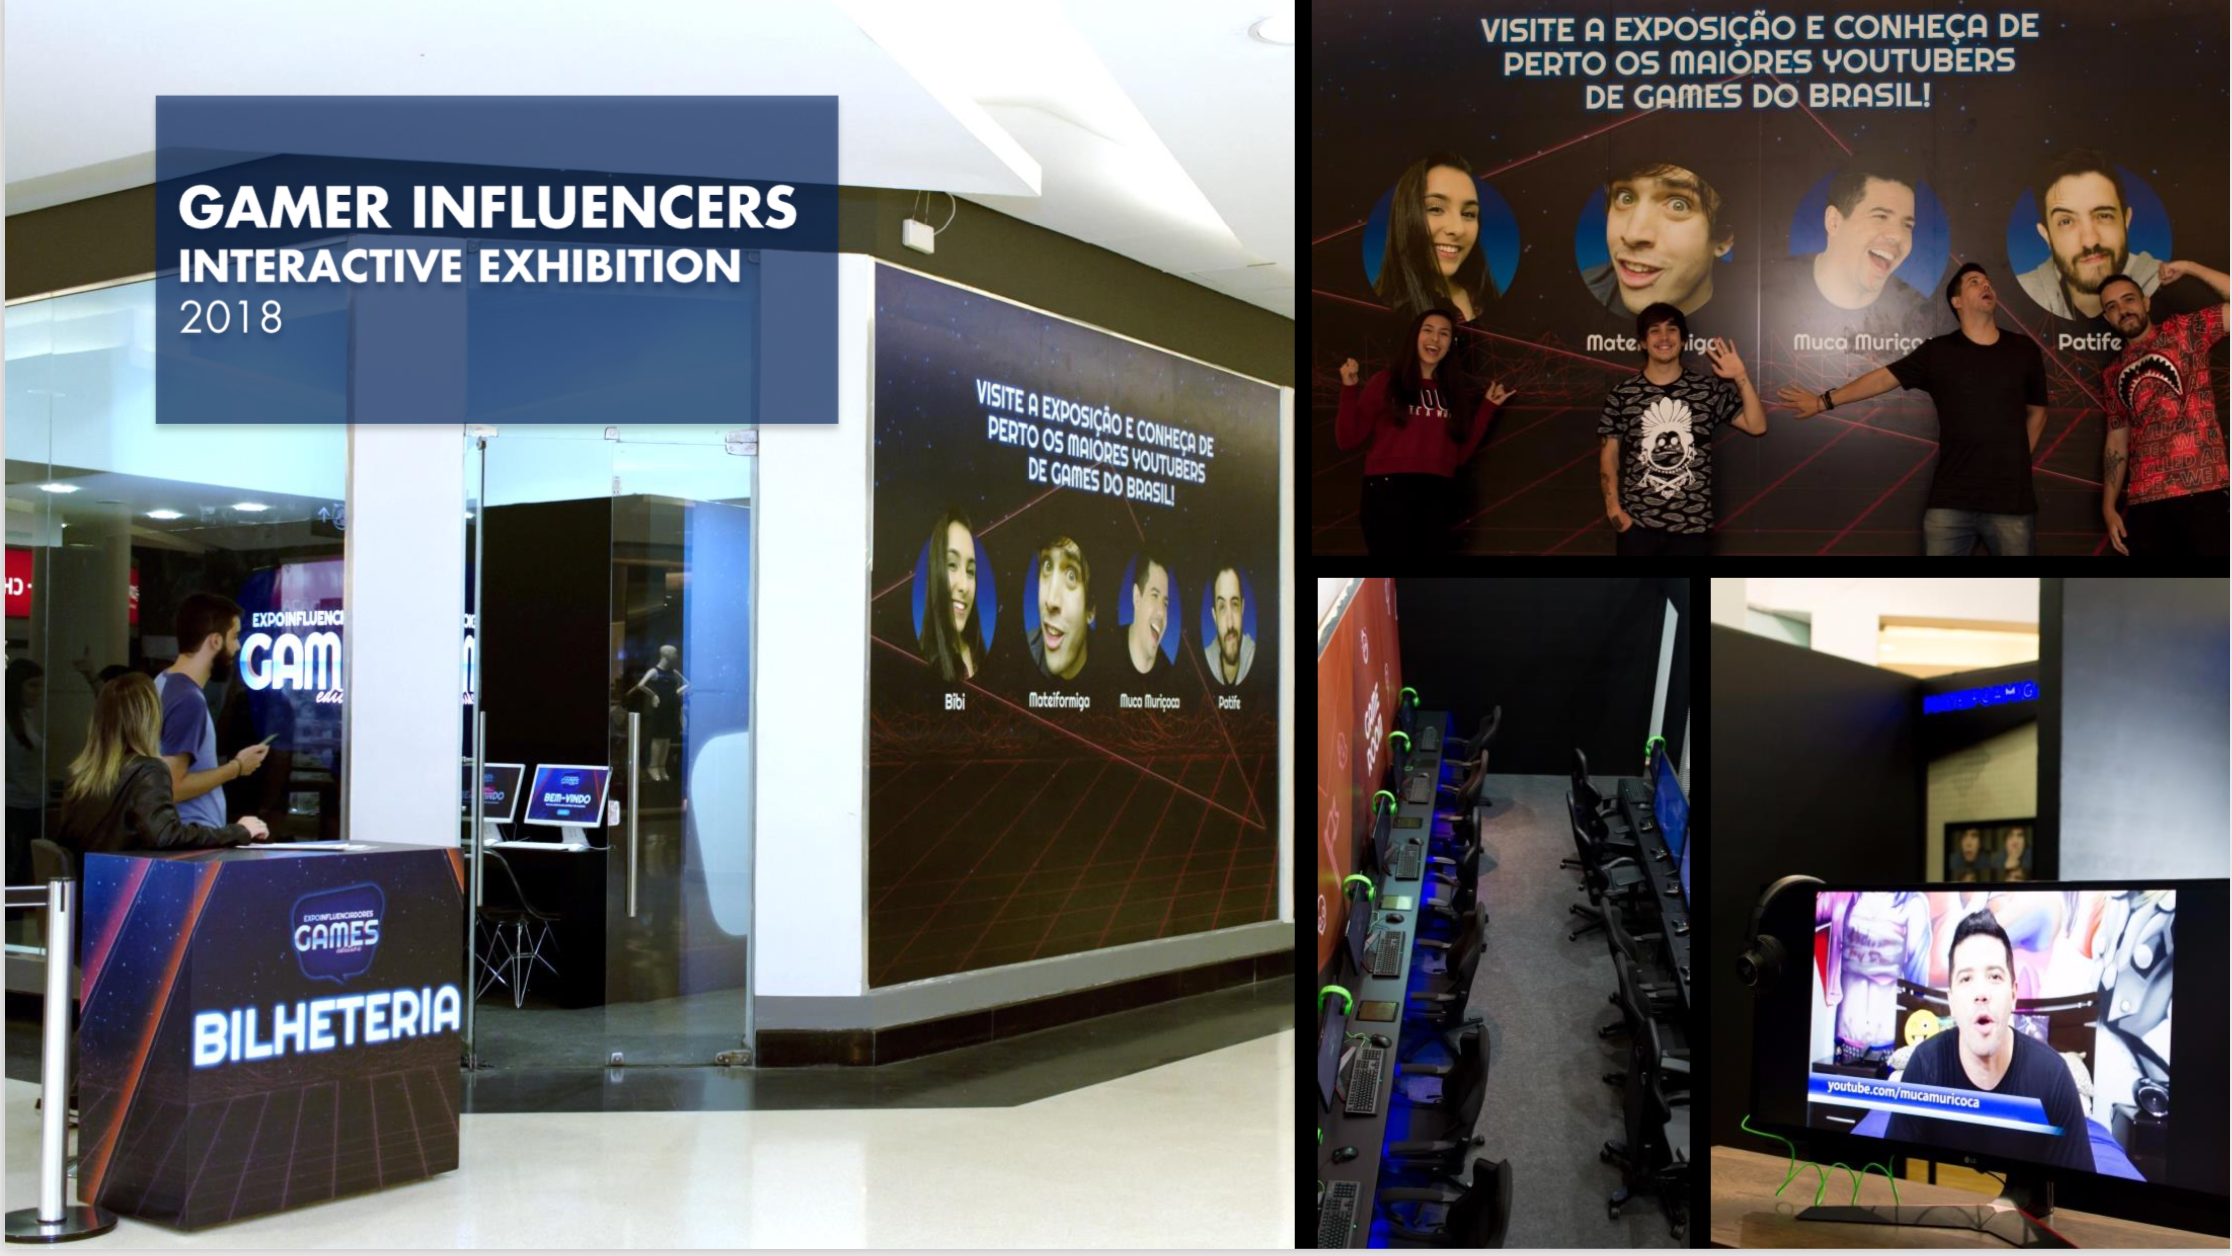 Gamer Influencers Interactive Exhibition Mall Tour